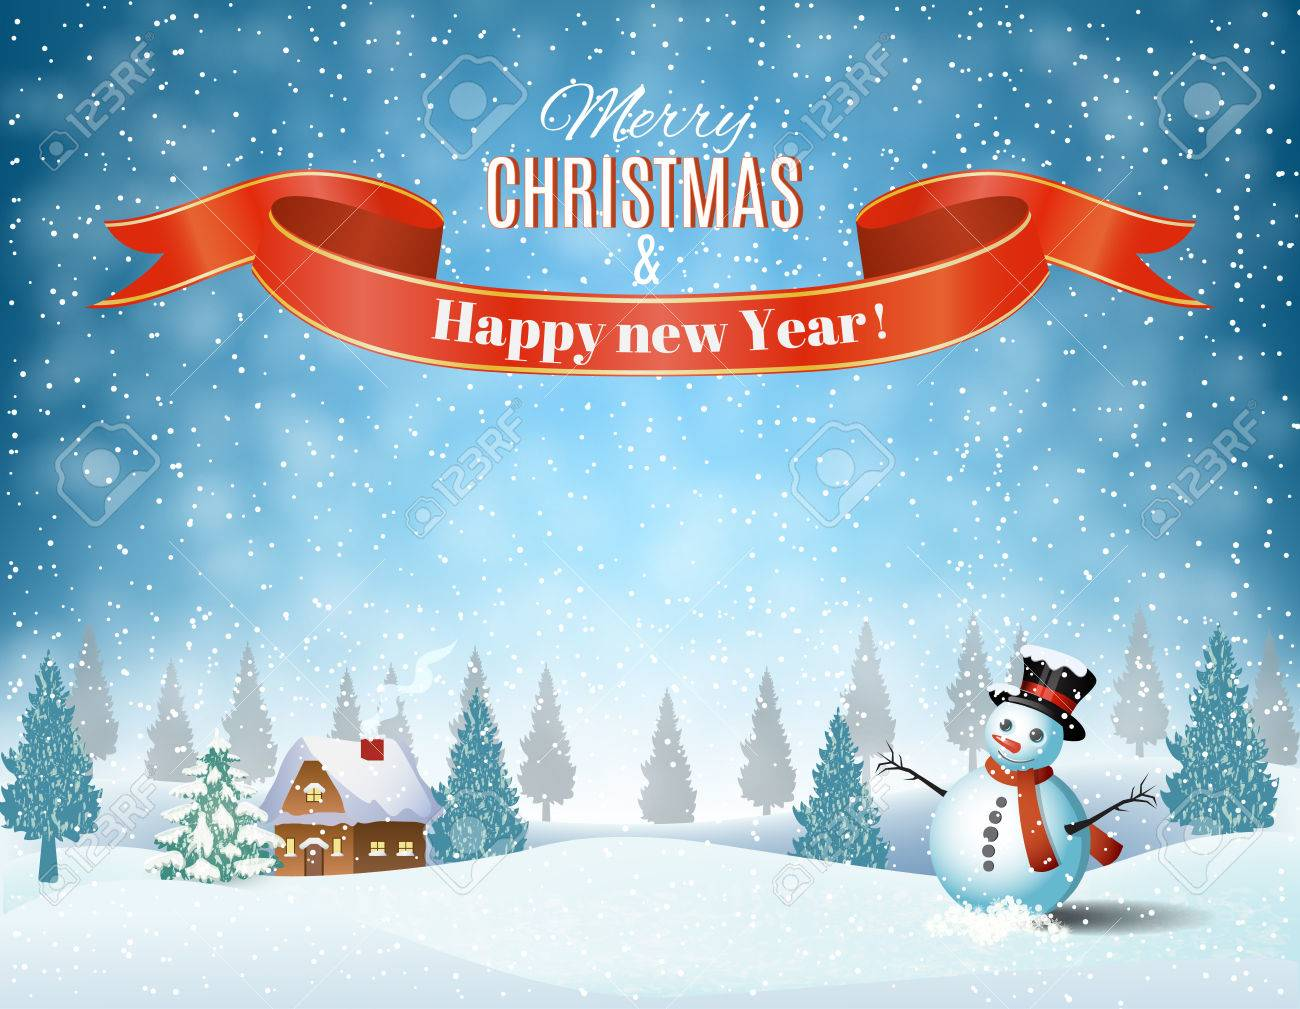 Christmas Scenery Stock Photos. Royalty Free Christmas Scenery Images